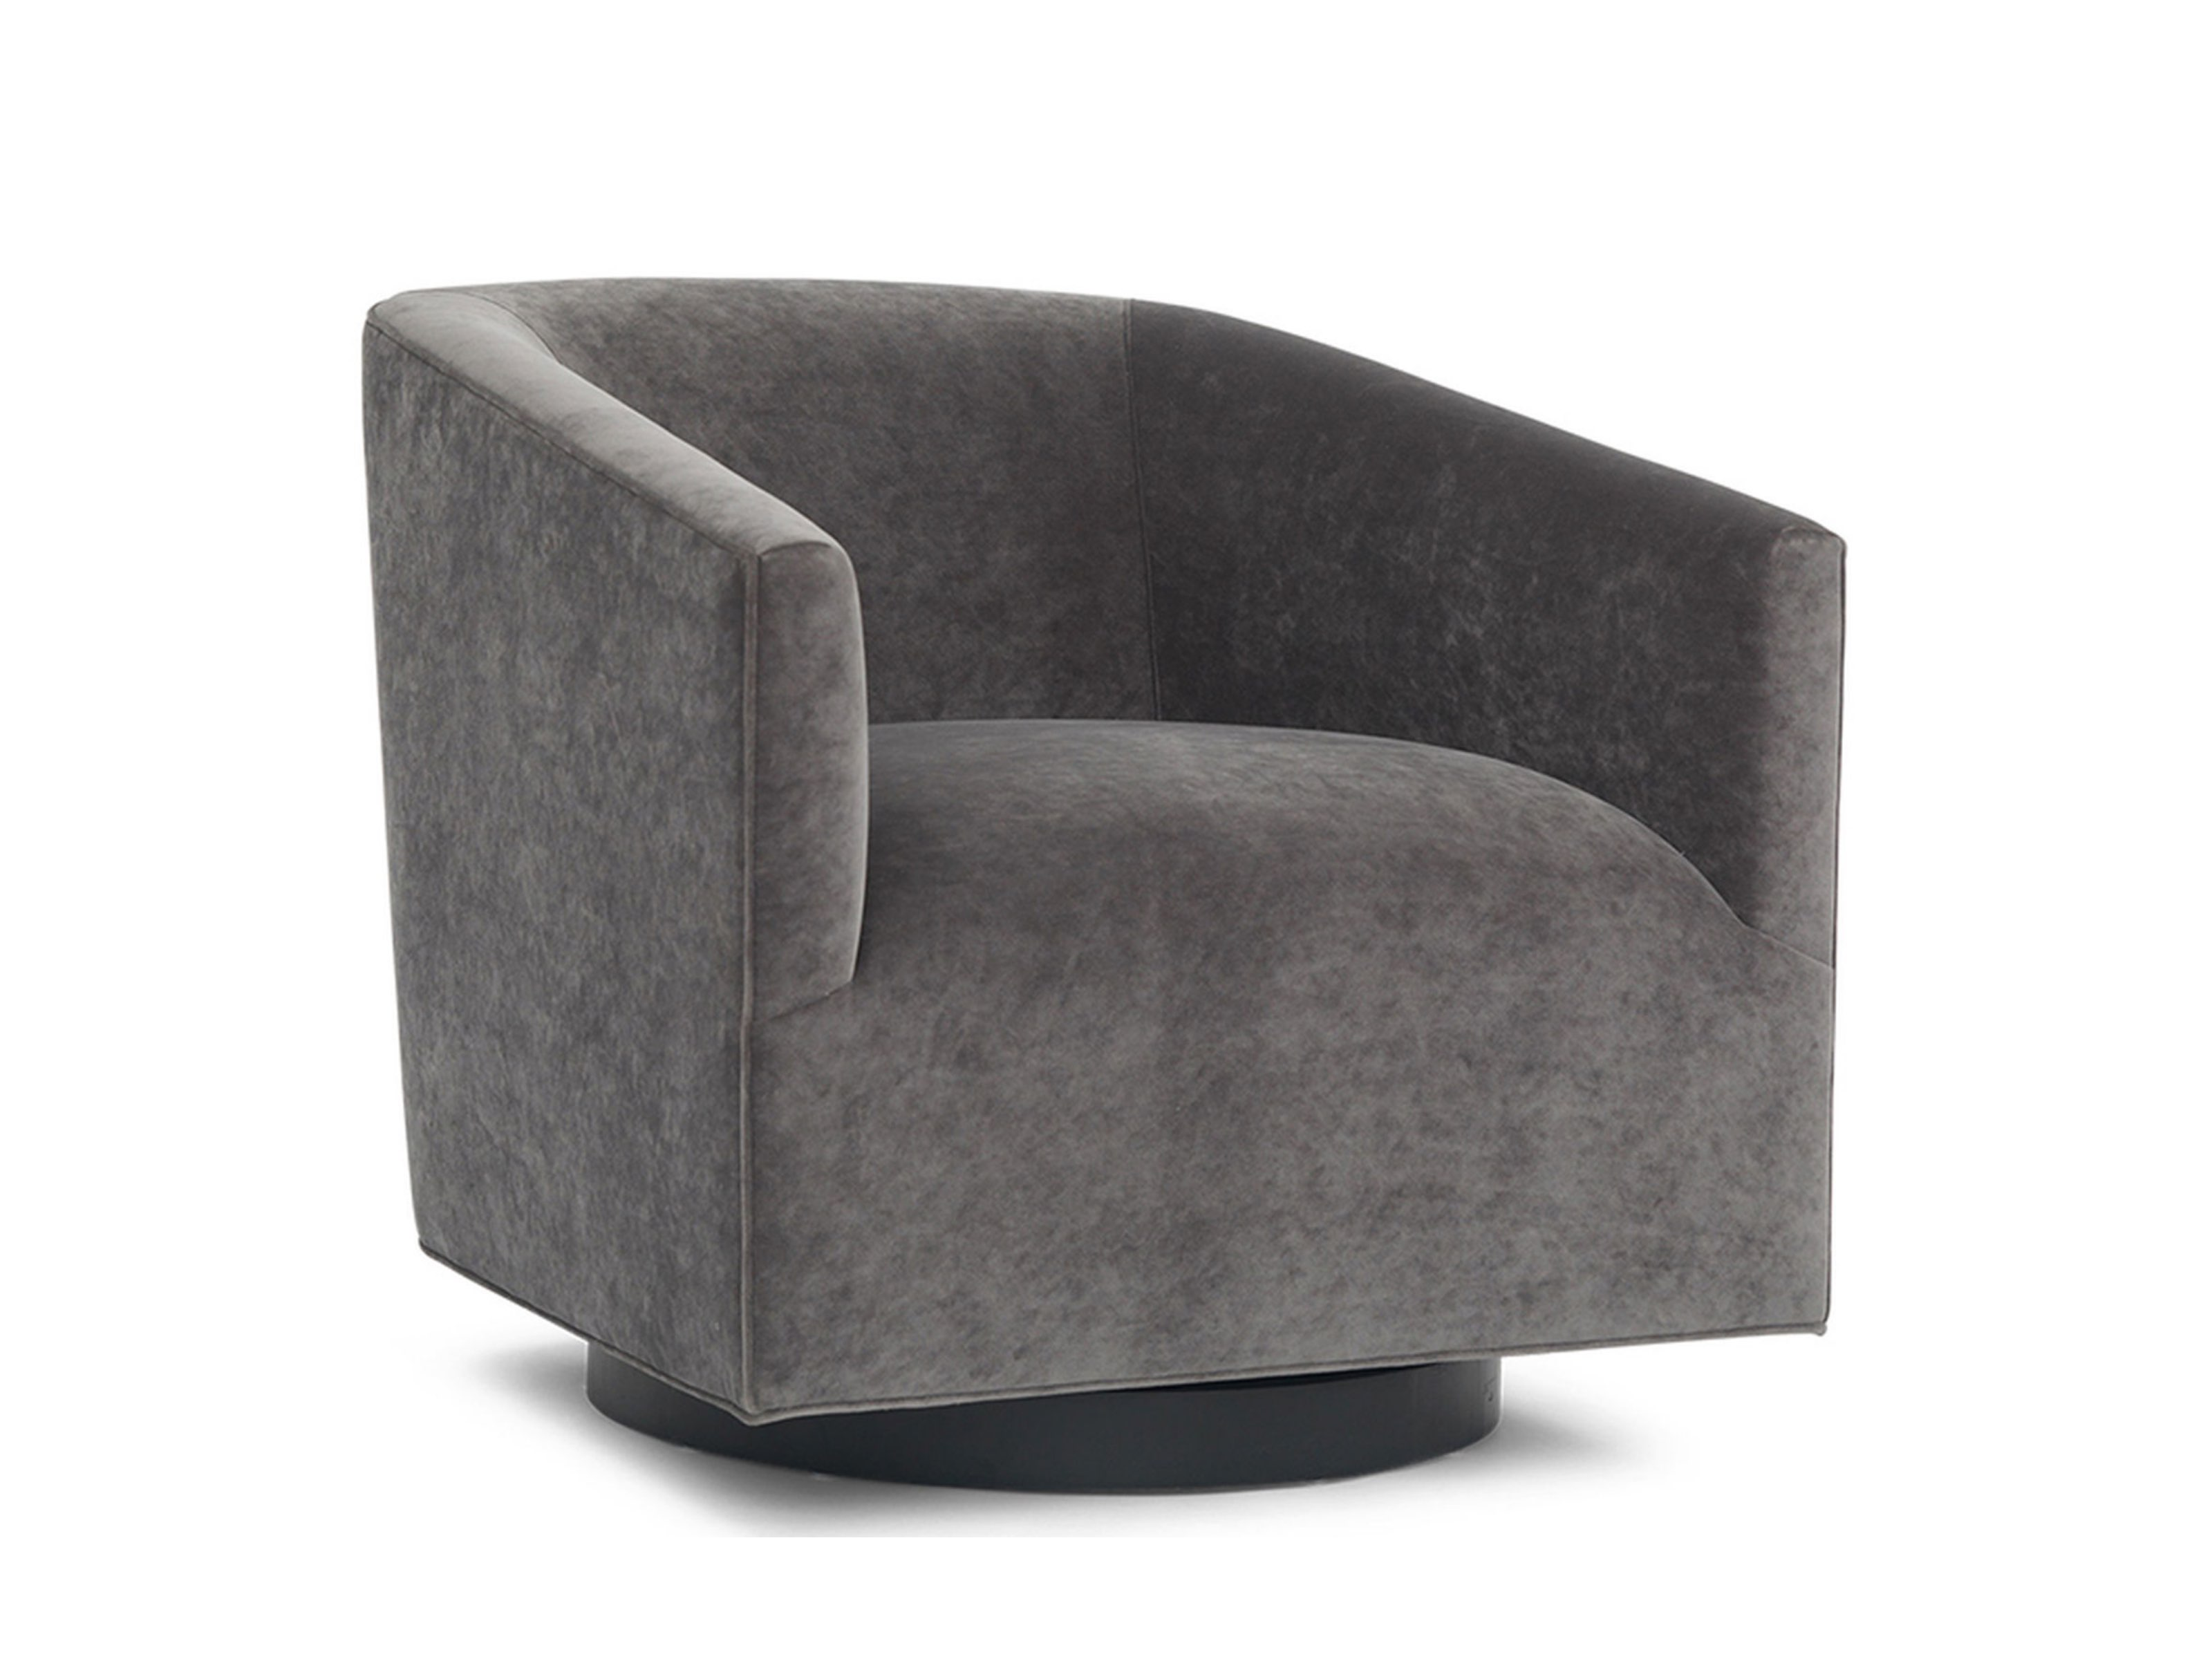 Miraculous Cooper Swivel Chair Steelcase Andrewgaddart Wooden Chair Designs For Living Room Andrewgaddartcom